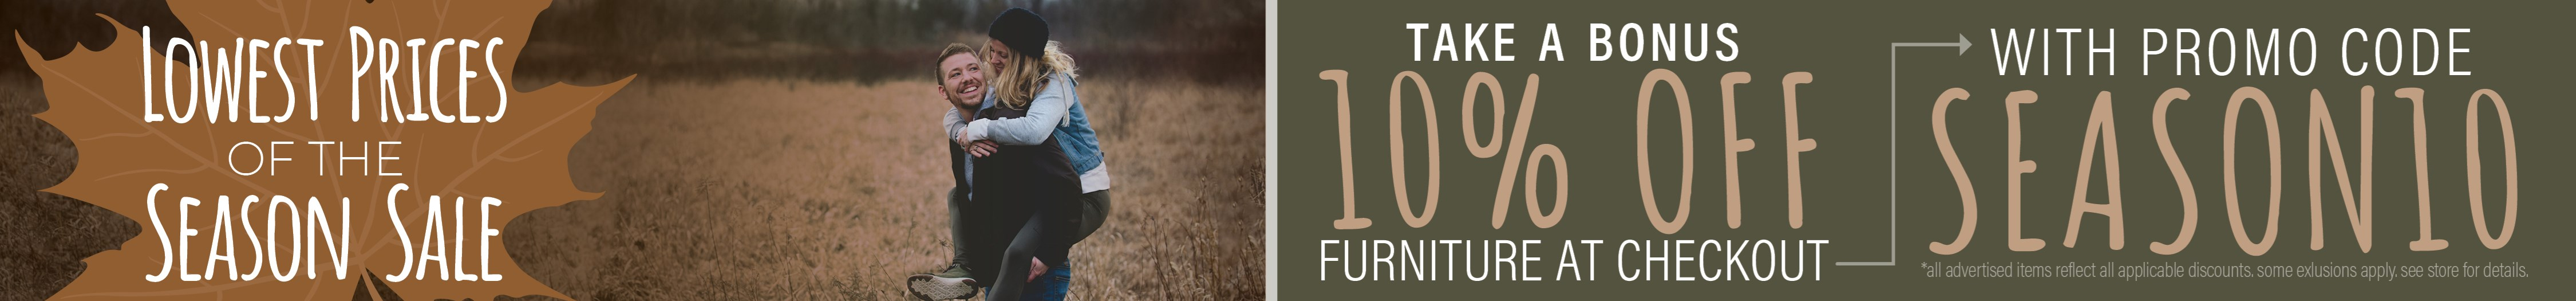 Furniture & ApplianceMart Lowest Price of the Season Sale